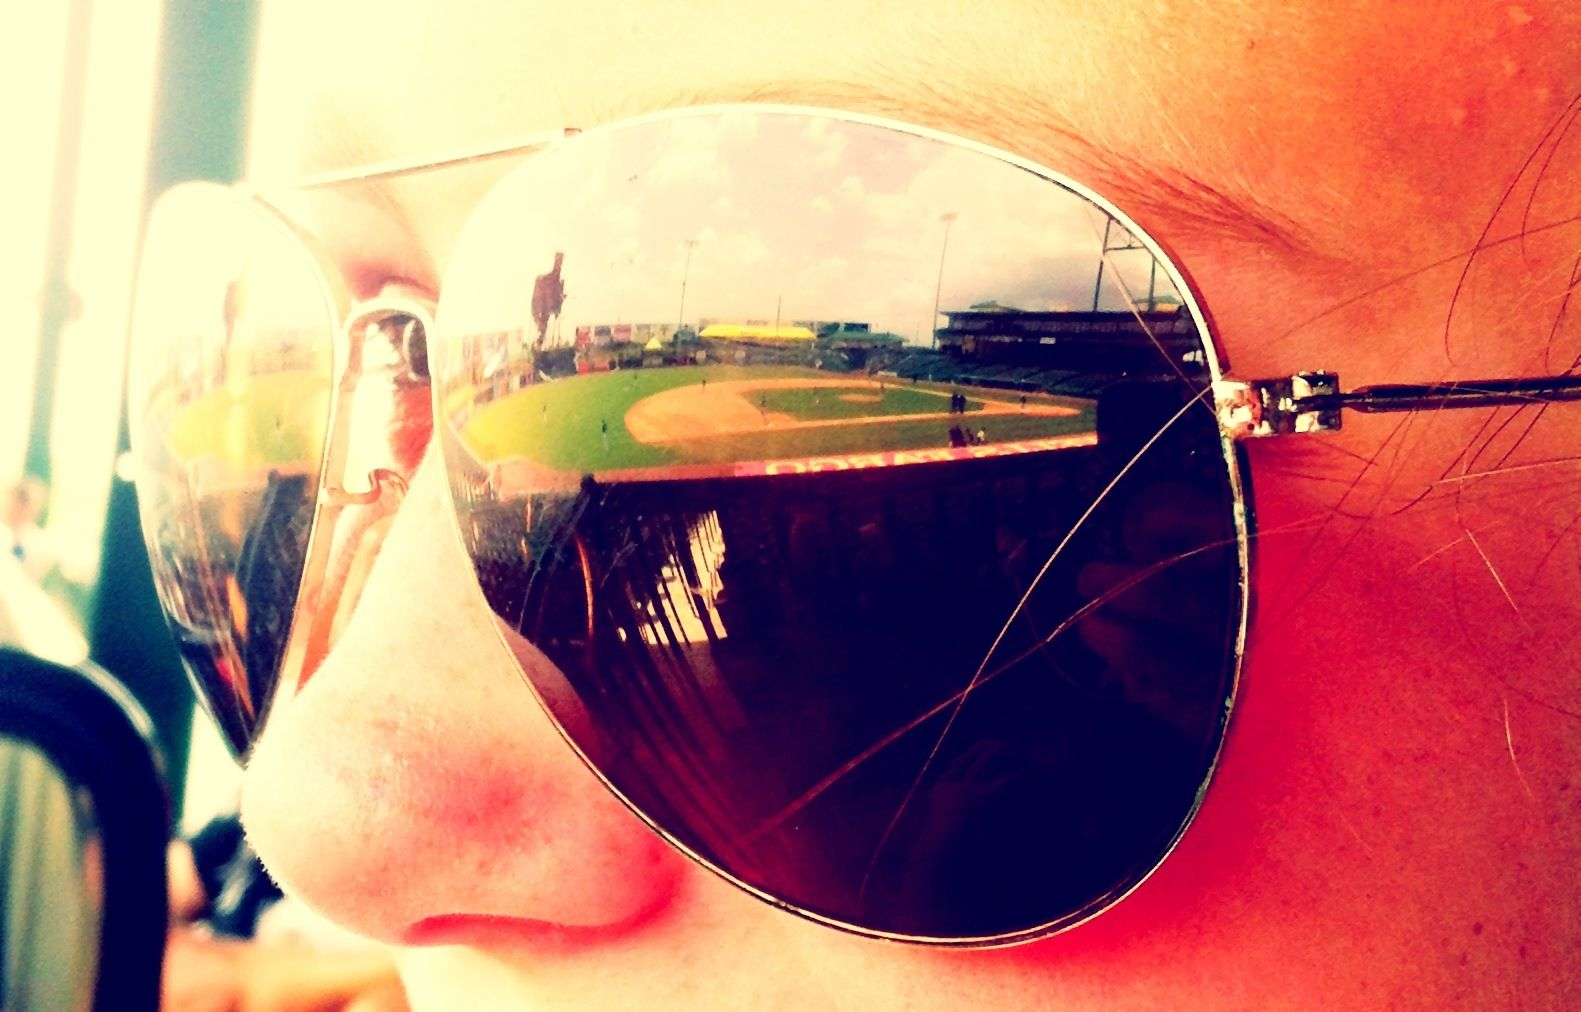 reflecting sunglasses are perfect for artsy pictures